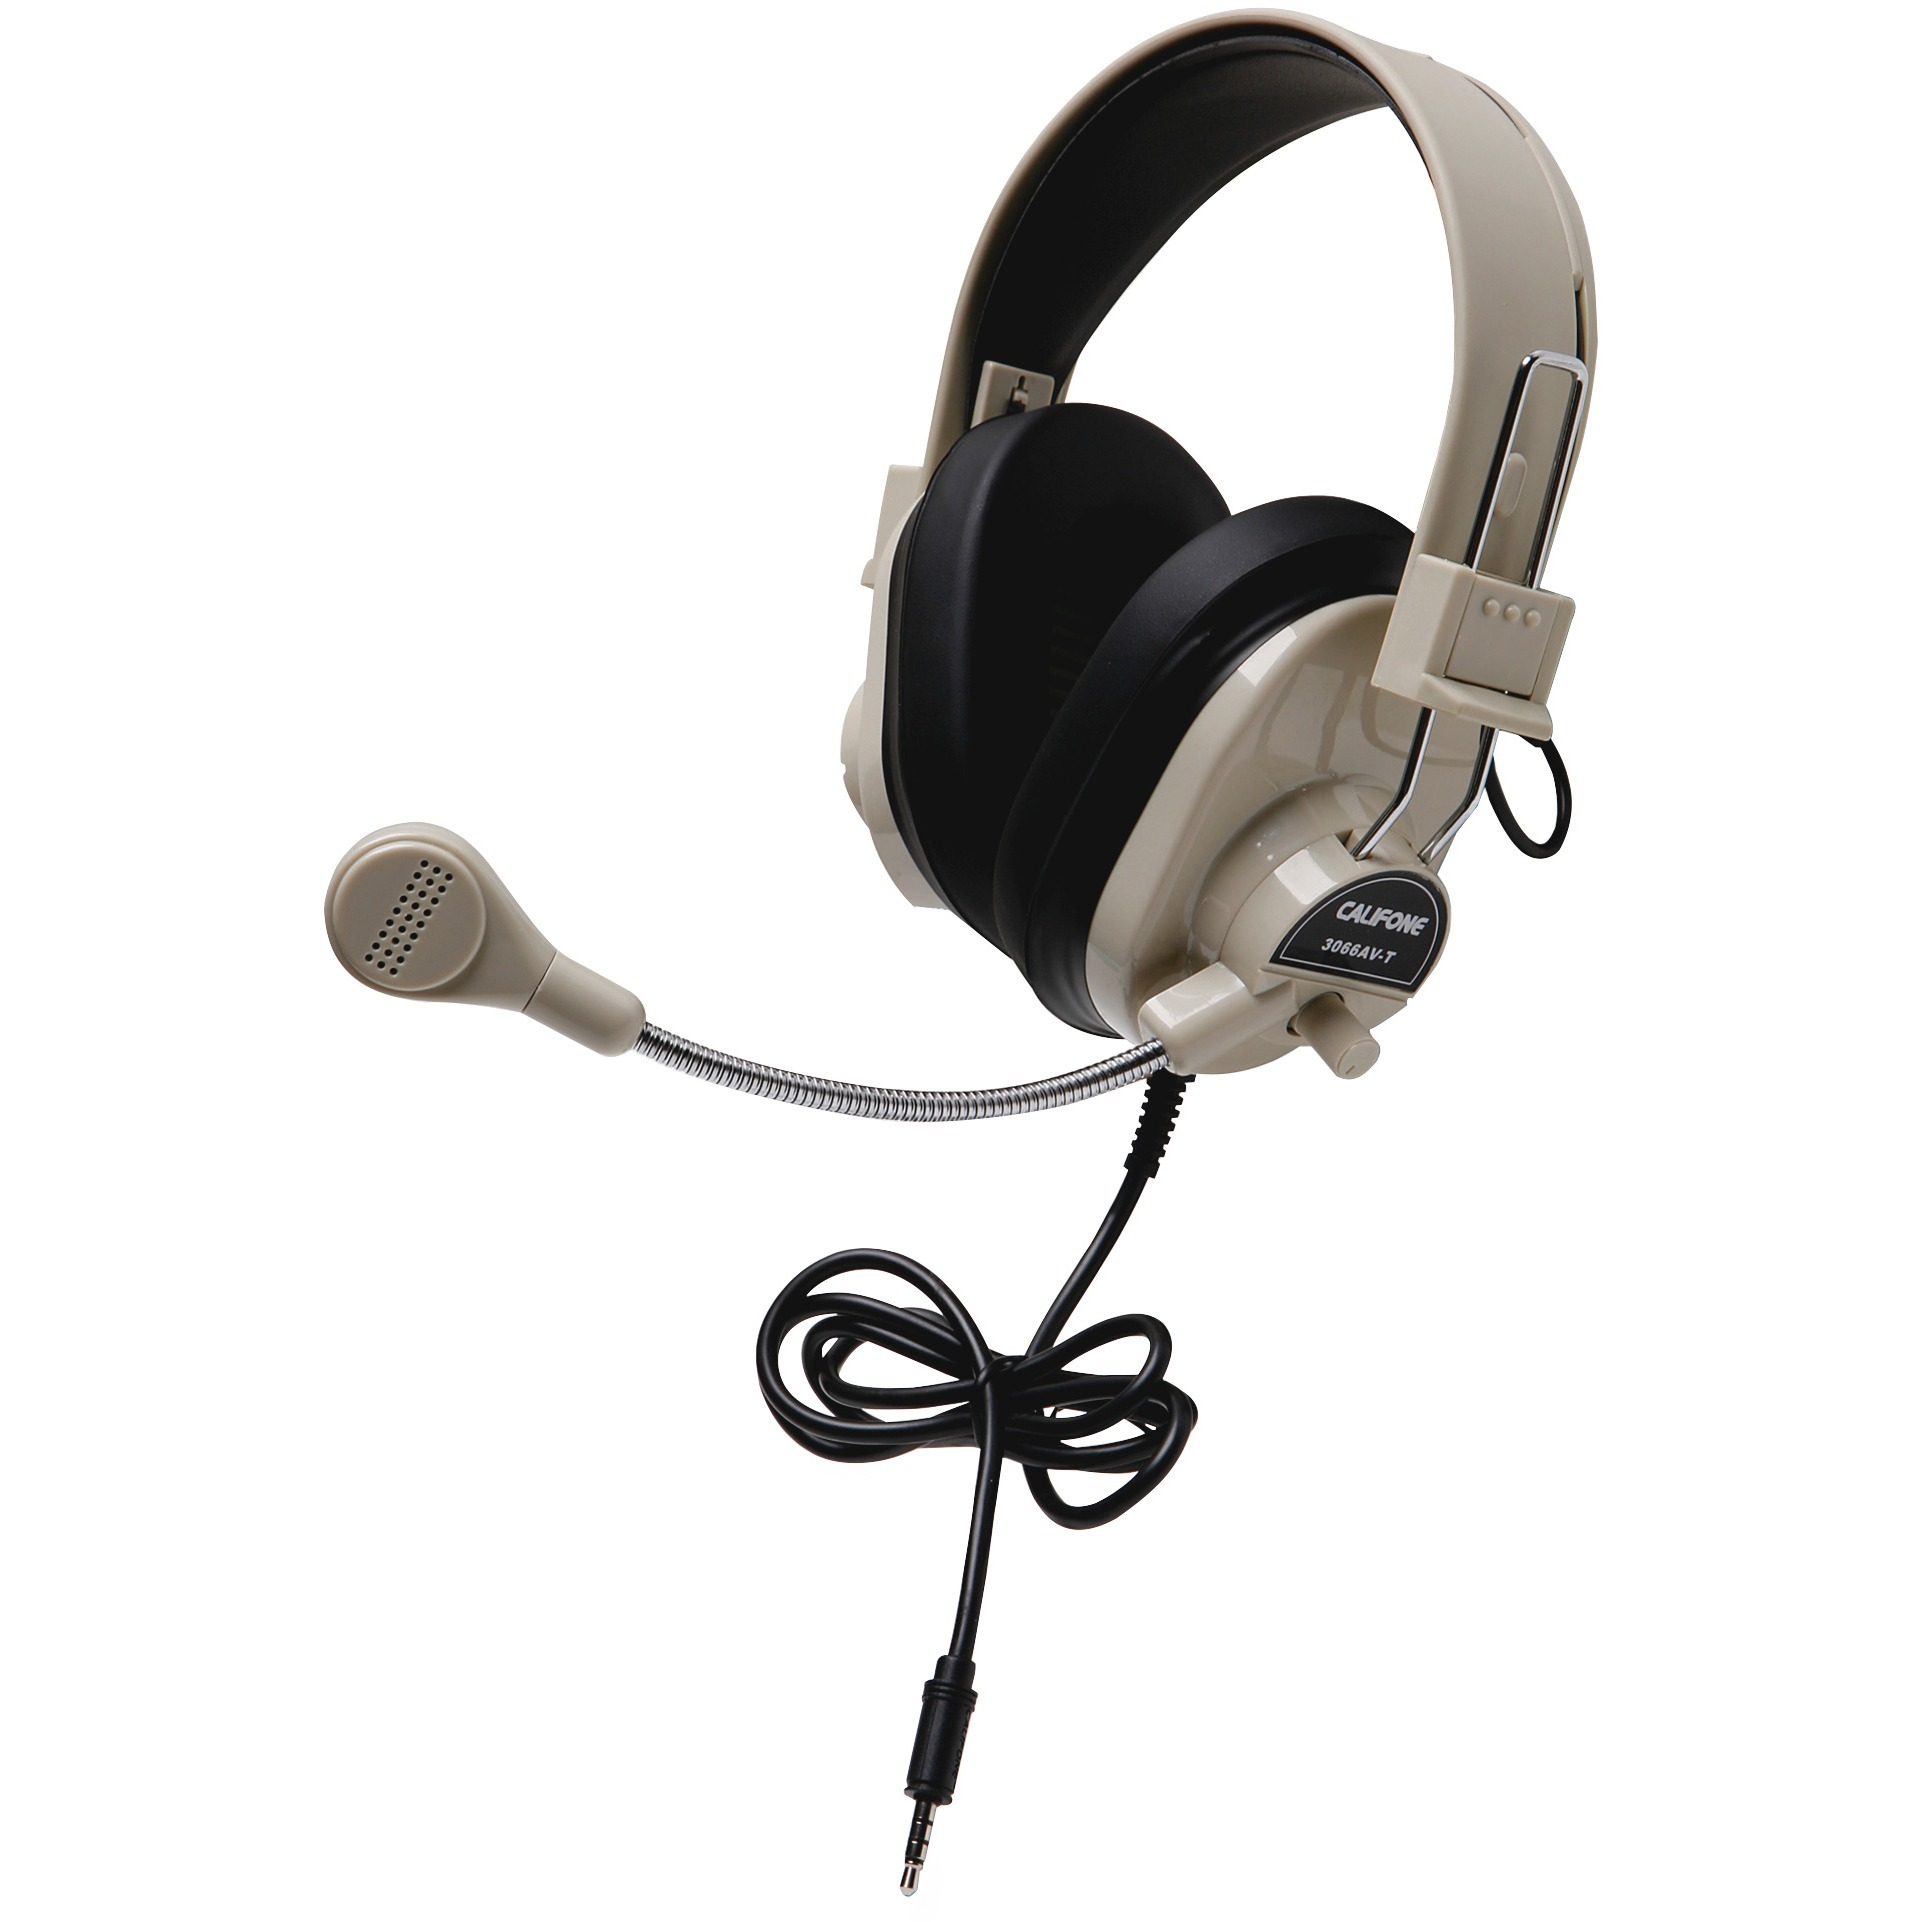 Califone, CII3066AVT, Deluxe Stereo Headset With To Go Plug, 1, Black